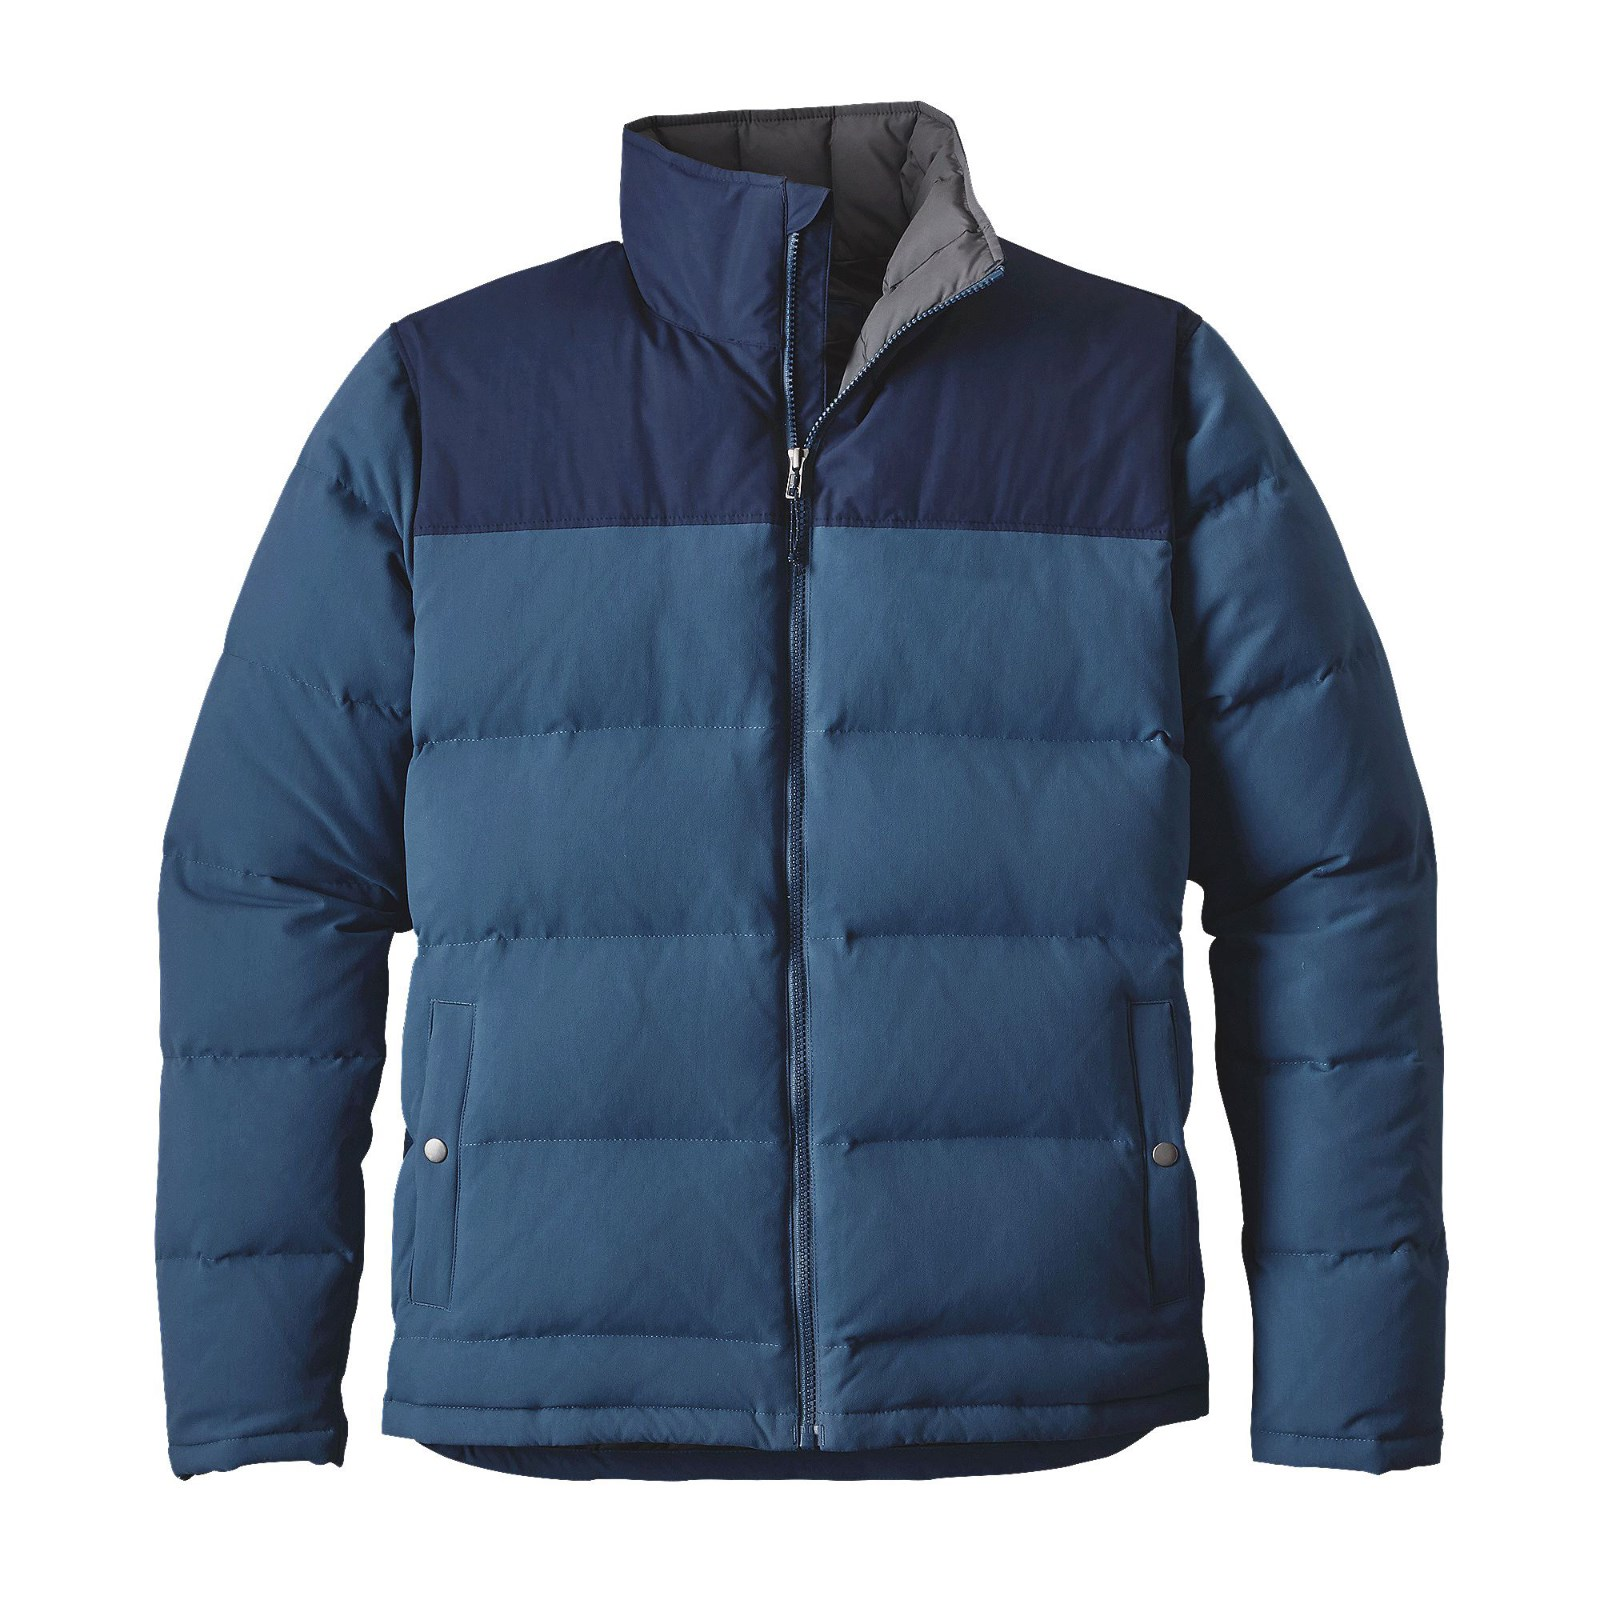 Men's Down Jacket Manufacturers, Men's Down Jacket Factory, Supply Men's Down Jacket